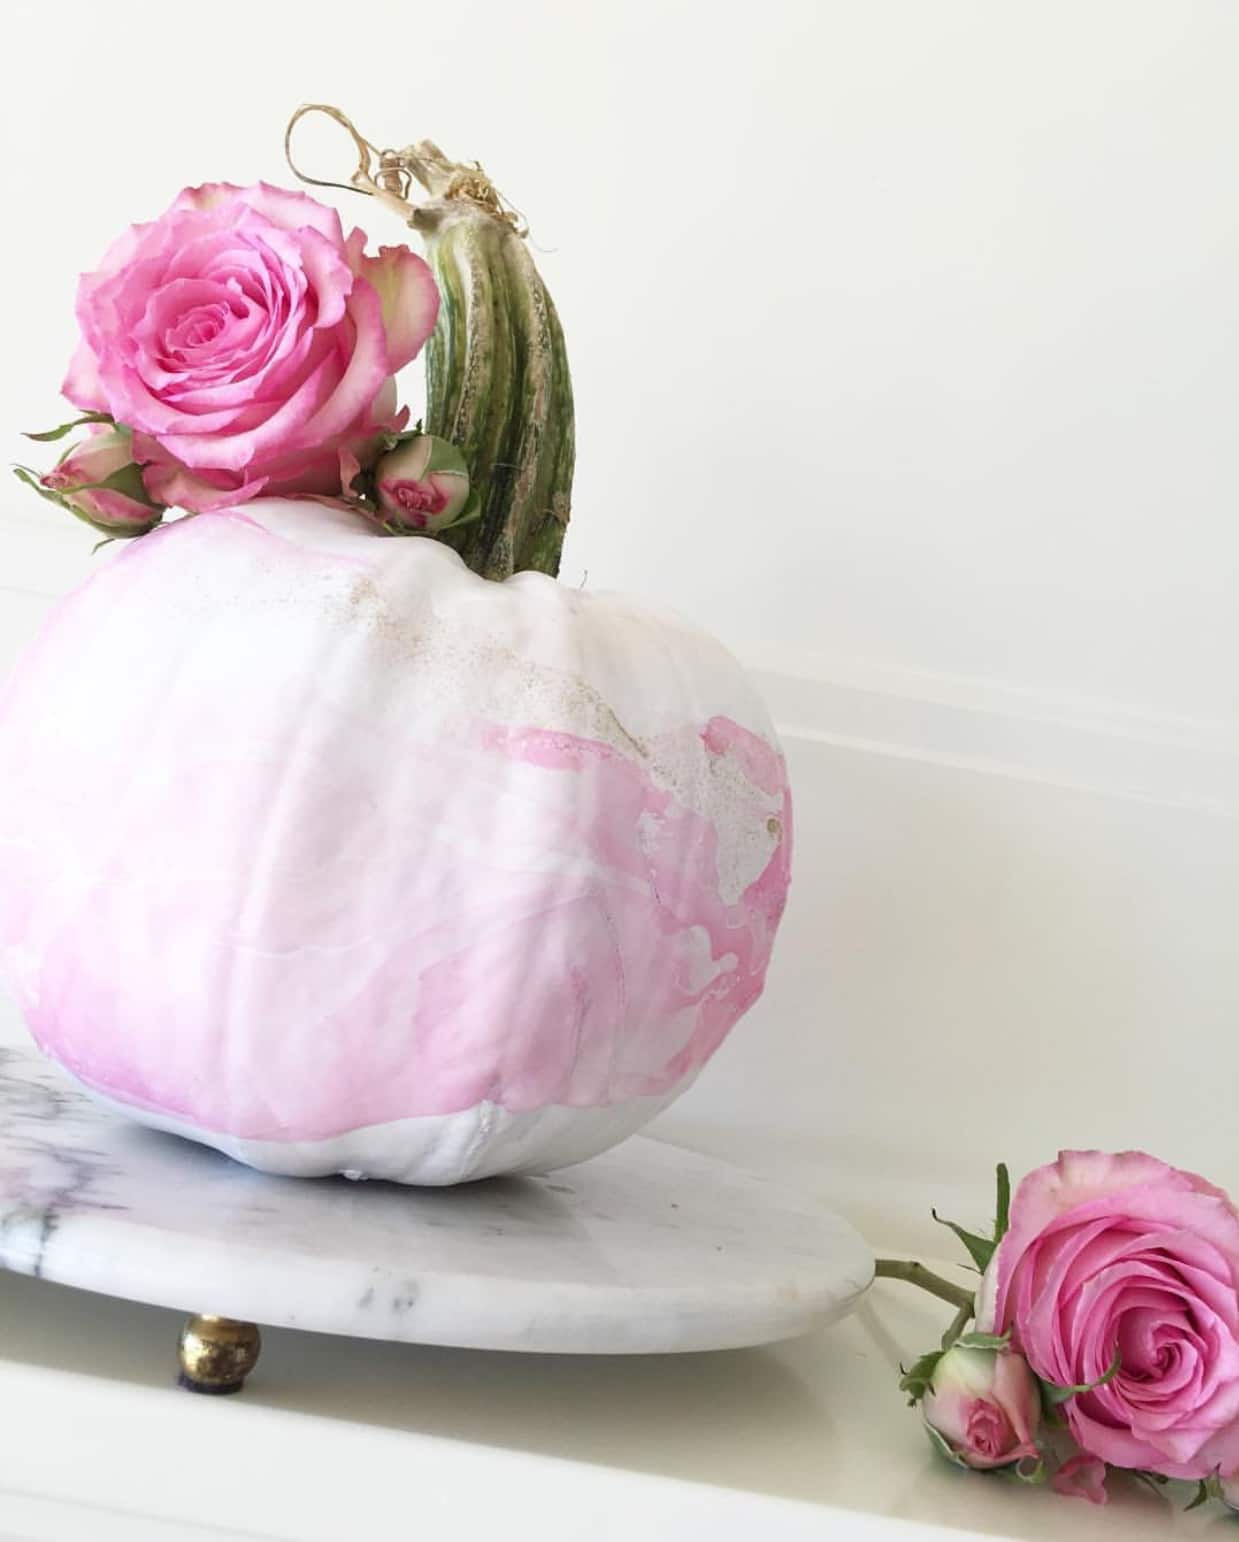 No carve white pumpkin painted pale pink & topped with a hot pink rose by Swoon Talent's DIY expert Monica Hart